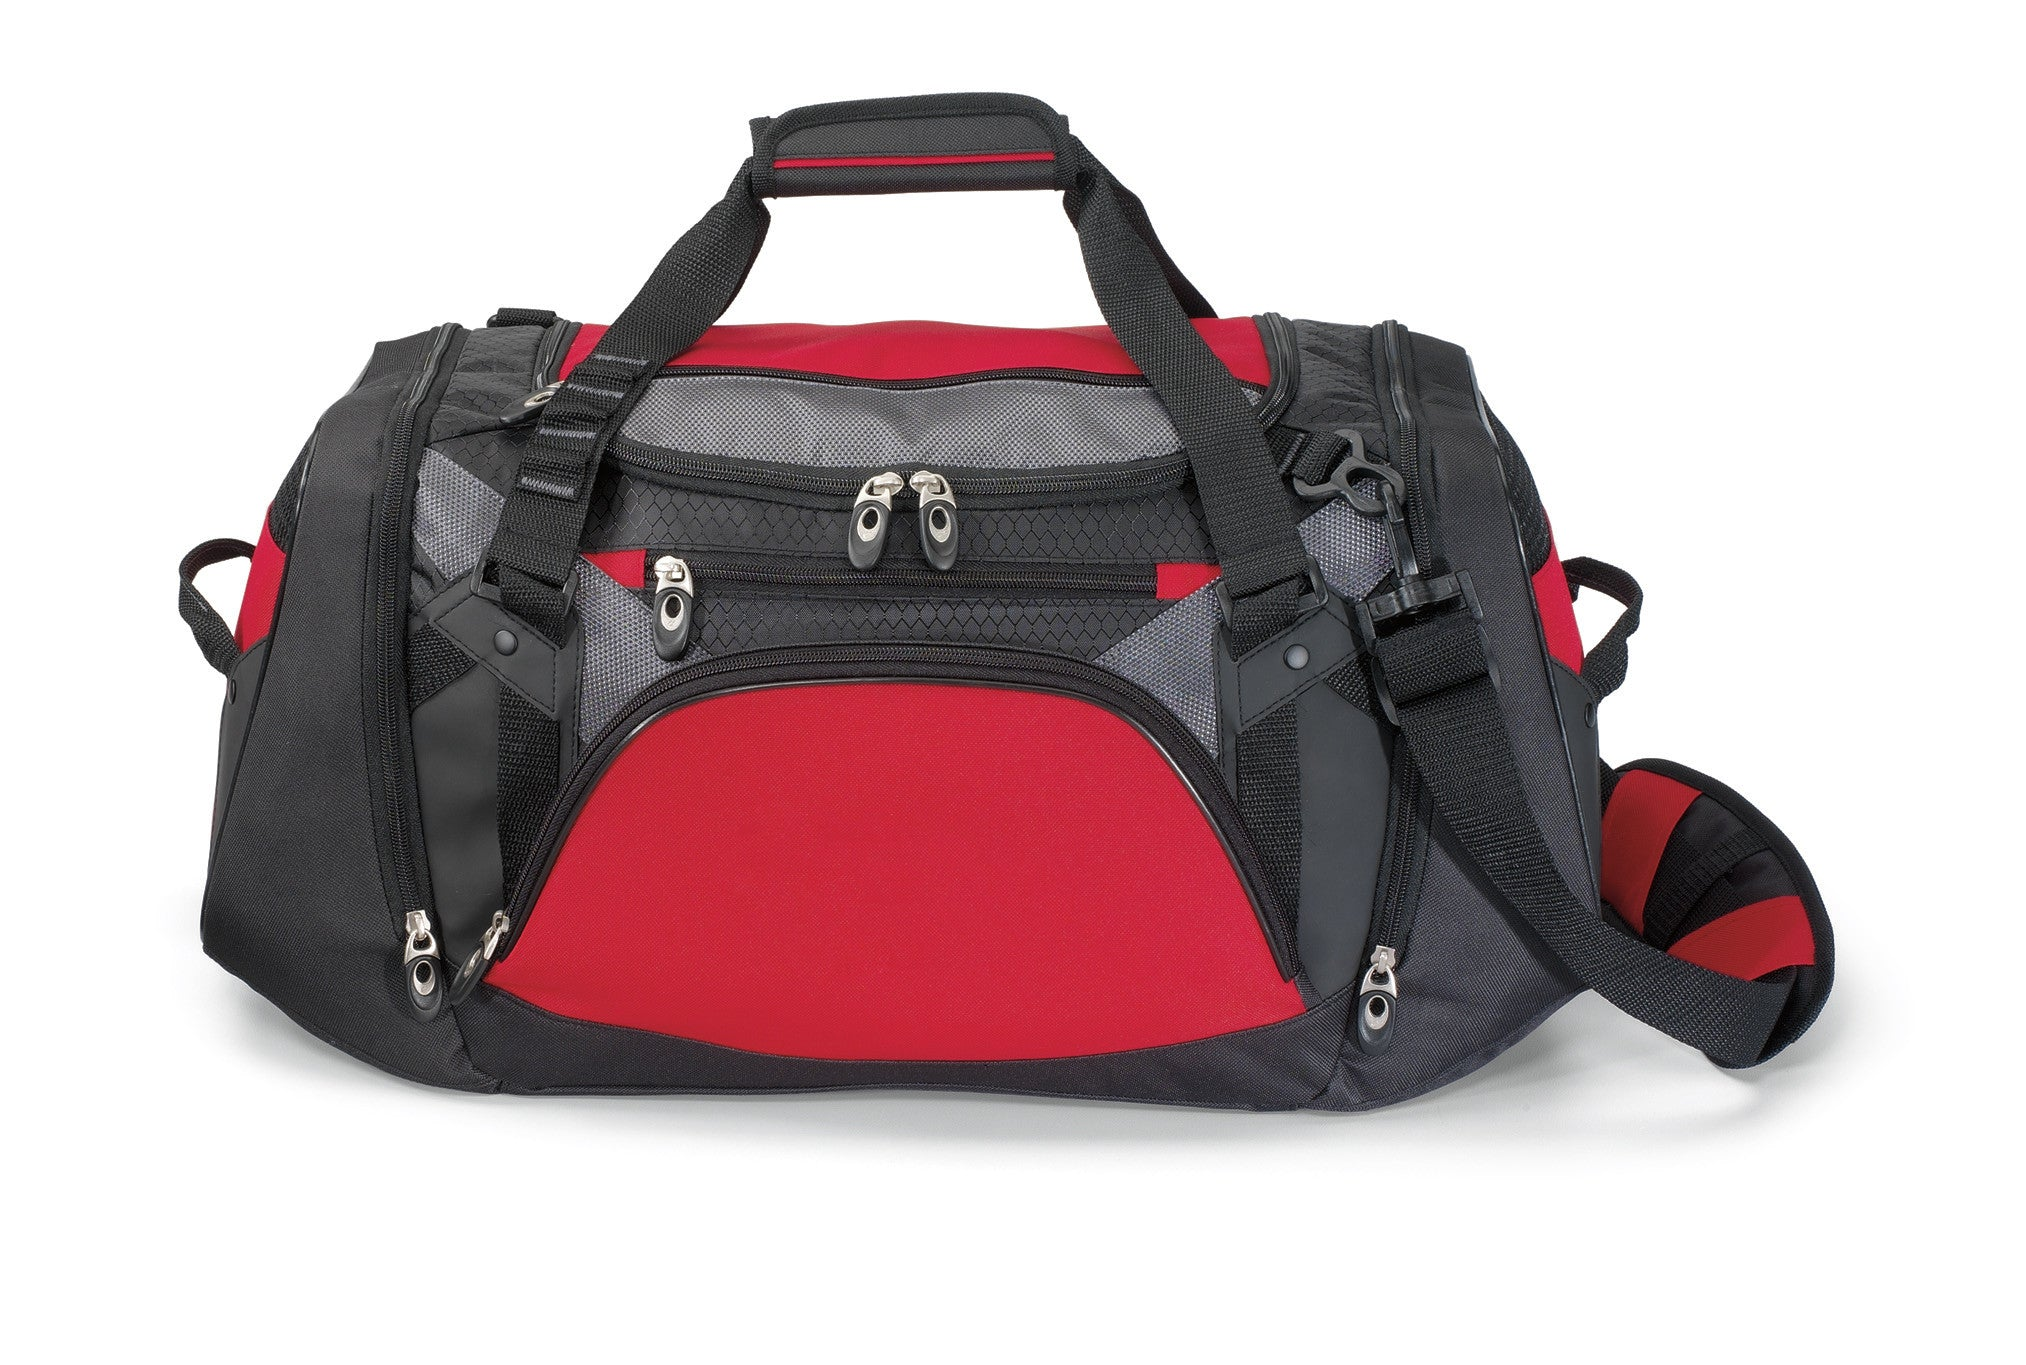 e3e9a1e53bb Gym Duffle Bag-Custom Duffle Bag-Custom Printed Gym Bag - PROMOrx